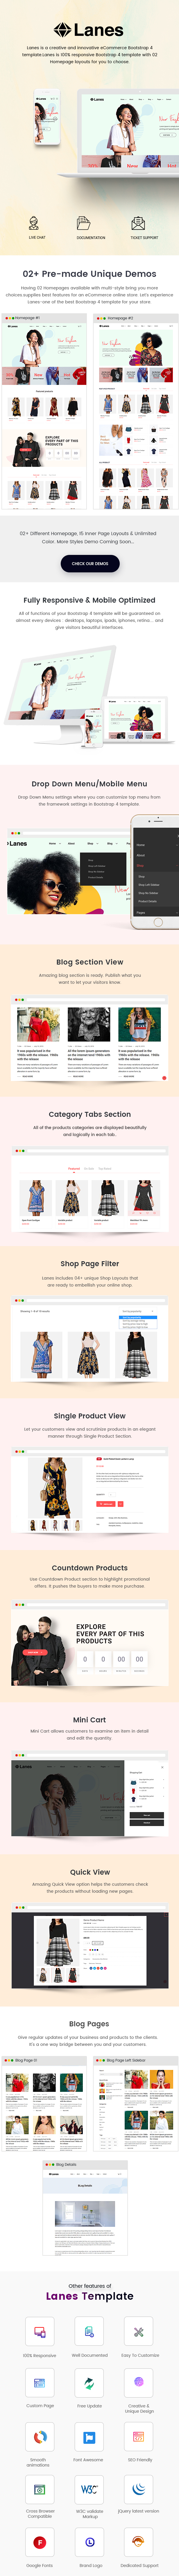 Lanes - Fashion Store HTML Template - 1